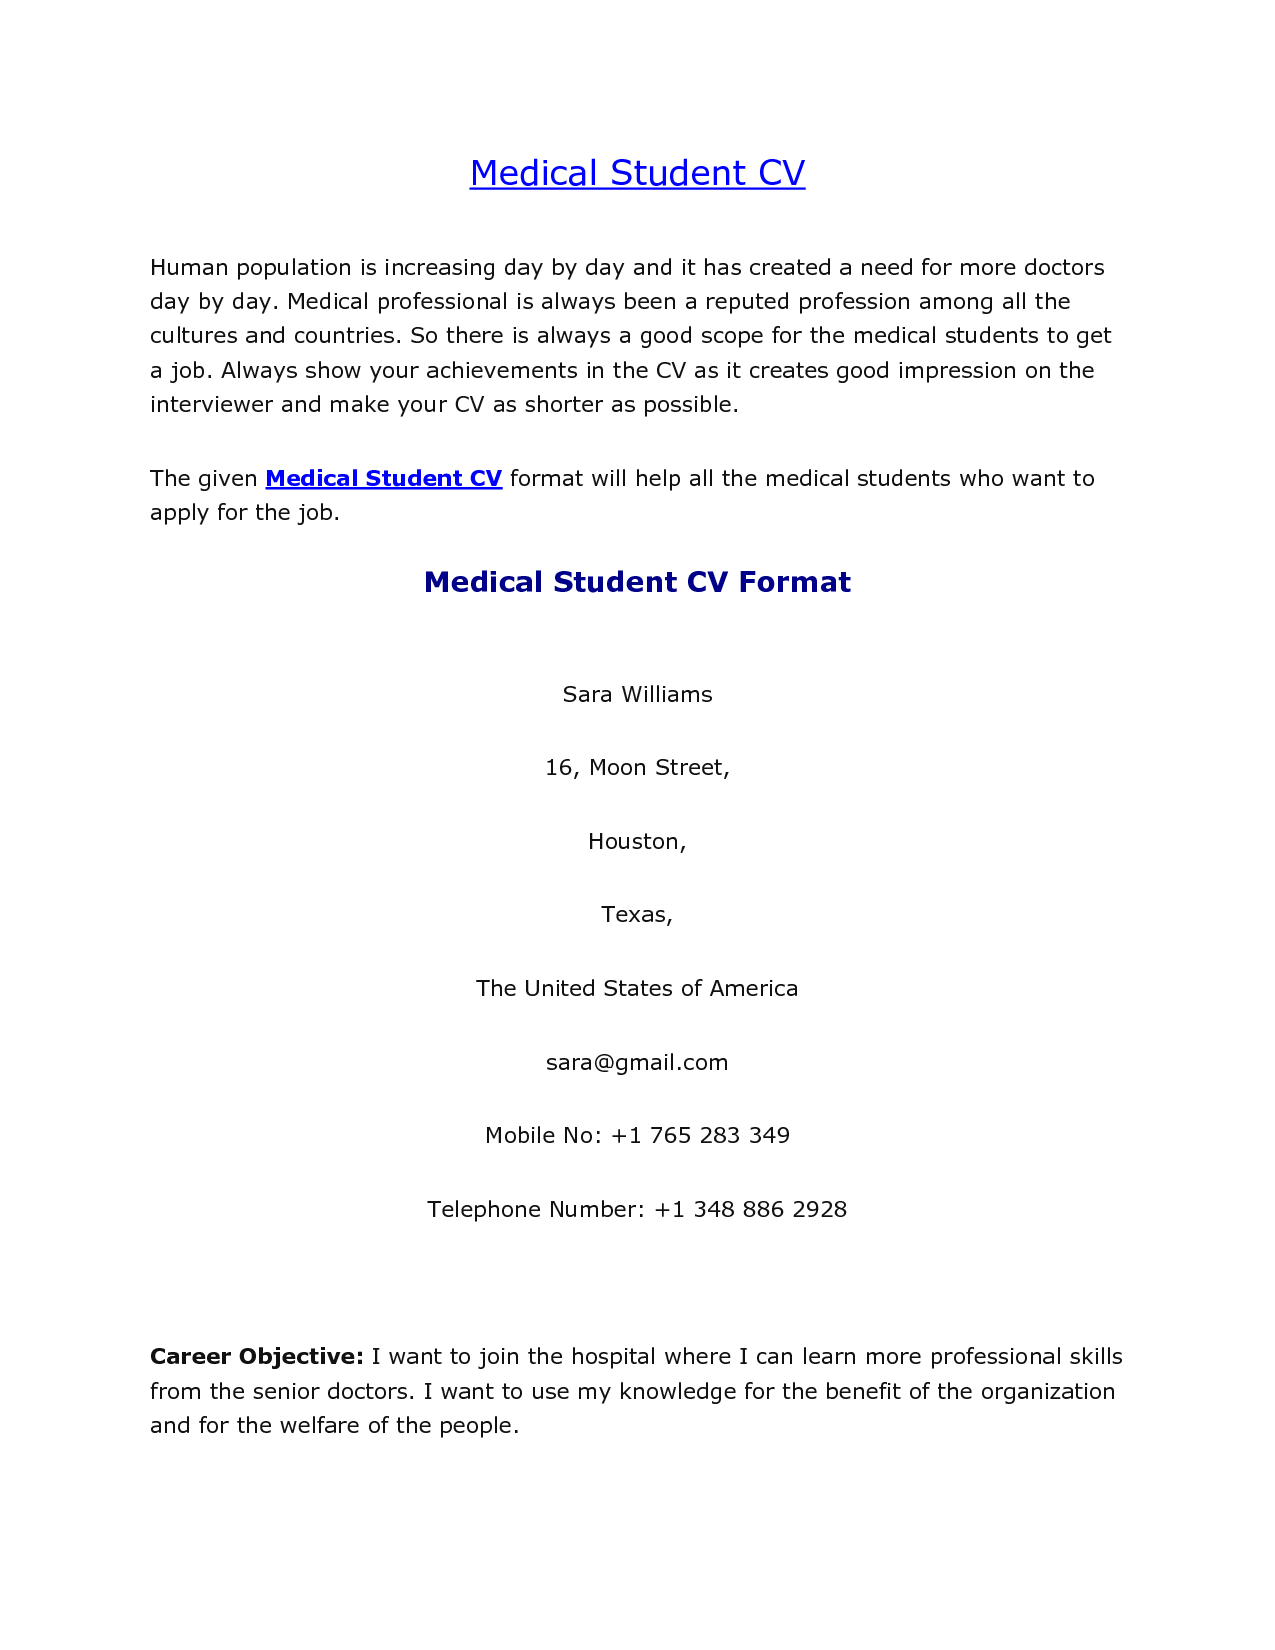 Exceptional Medical Student CV Sample Inside Medical Student Resume